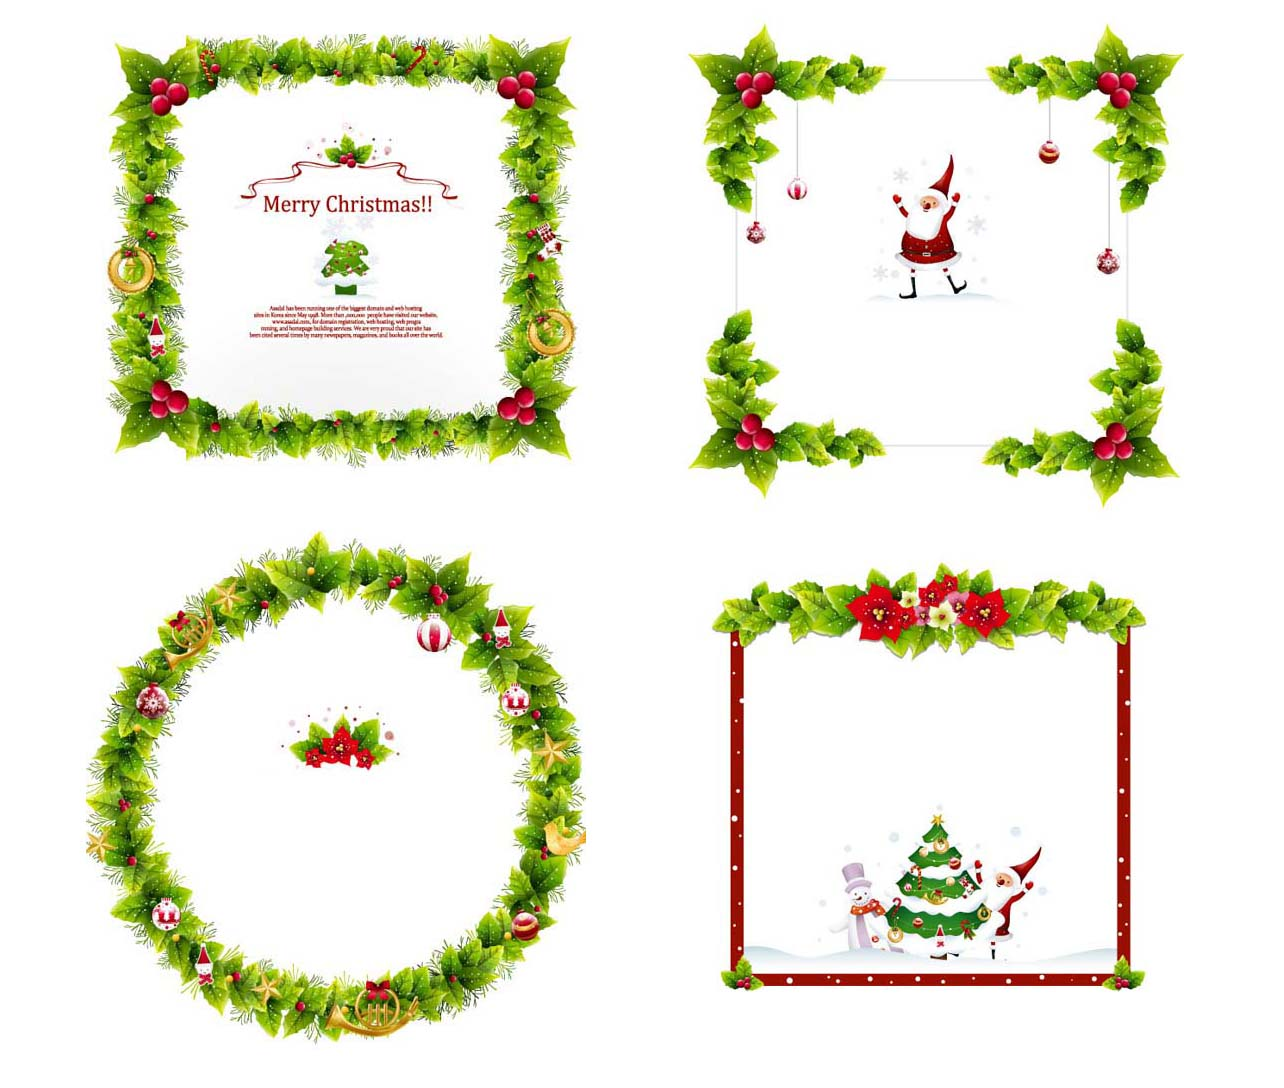 17 Free Christmas Border Vector Images